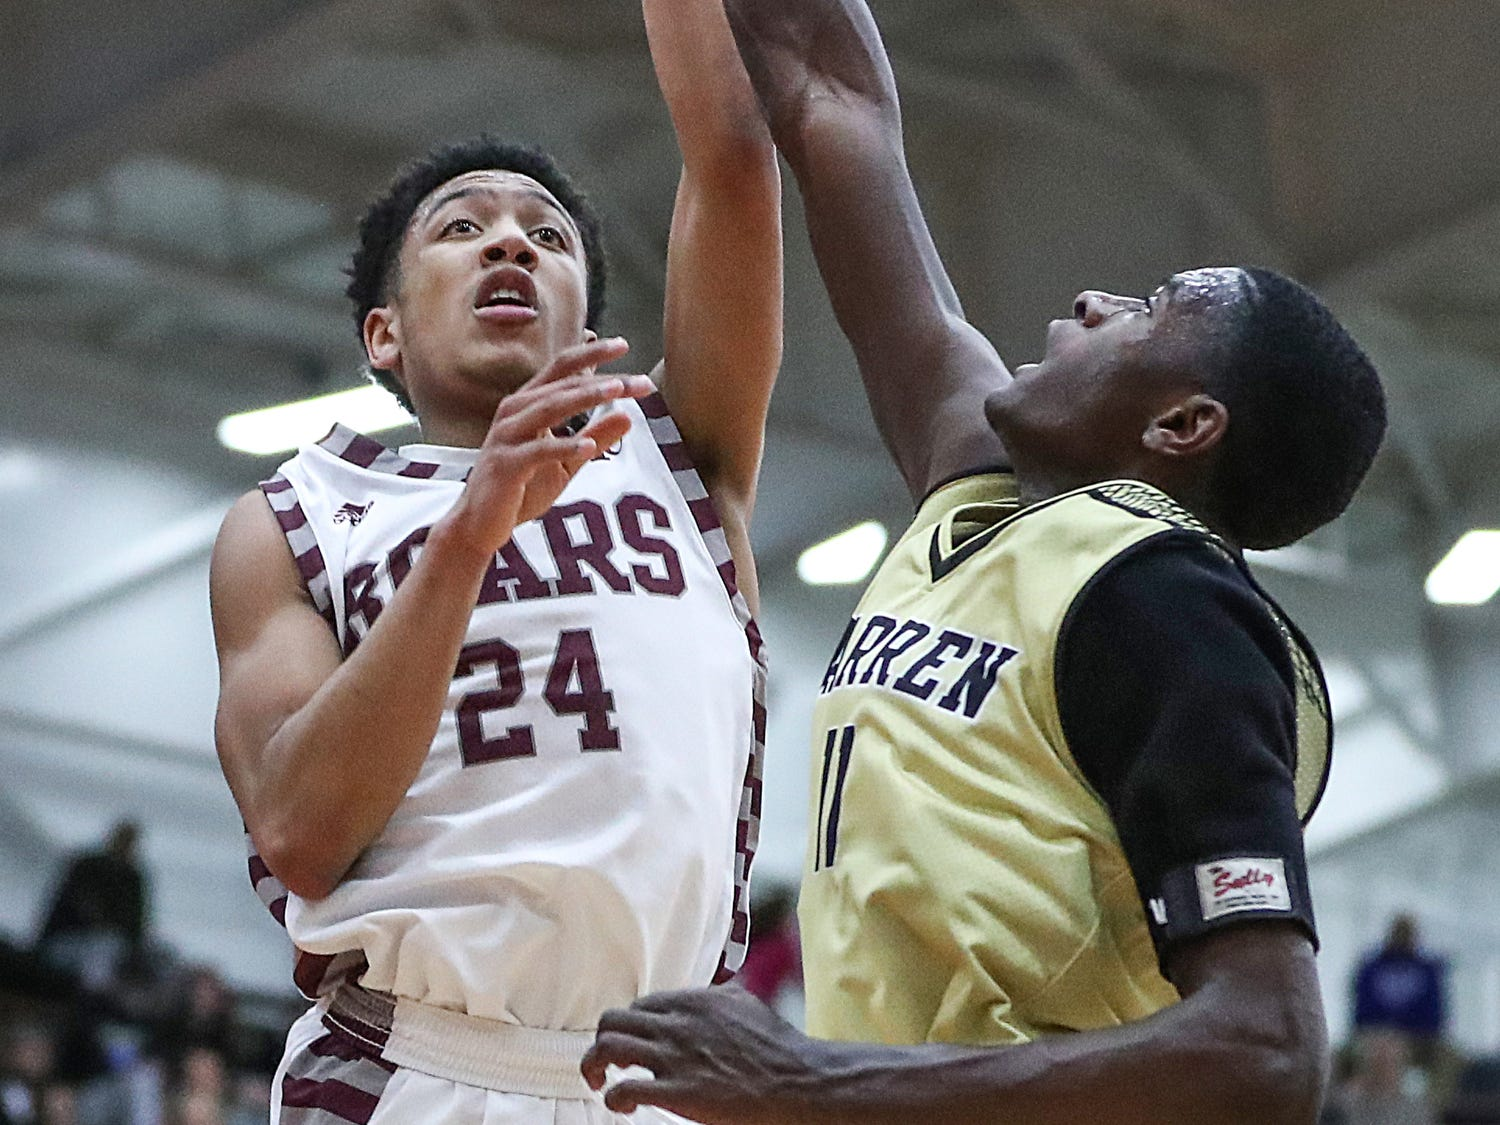 Warren Central Warriors forward Jesse Bingham (11) tries to stop a shot by Lawrence Central Bears Nijel Pack (24) in the first half of Marion County tournament finals at Southport High School in Indianapolis, Monday, Jan. 14, 2019. Warren Central won the title, 60-56.